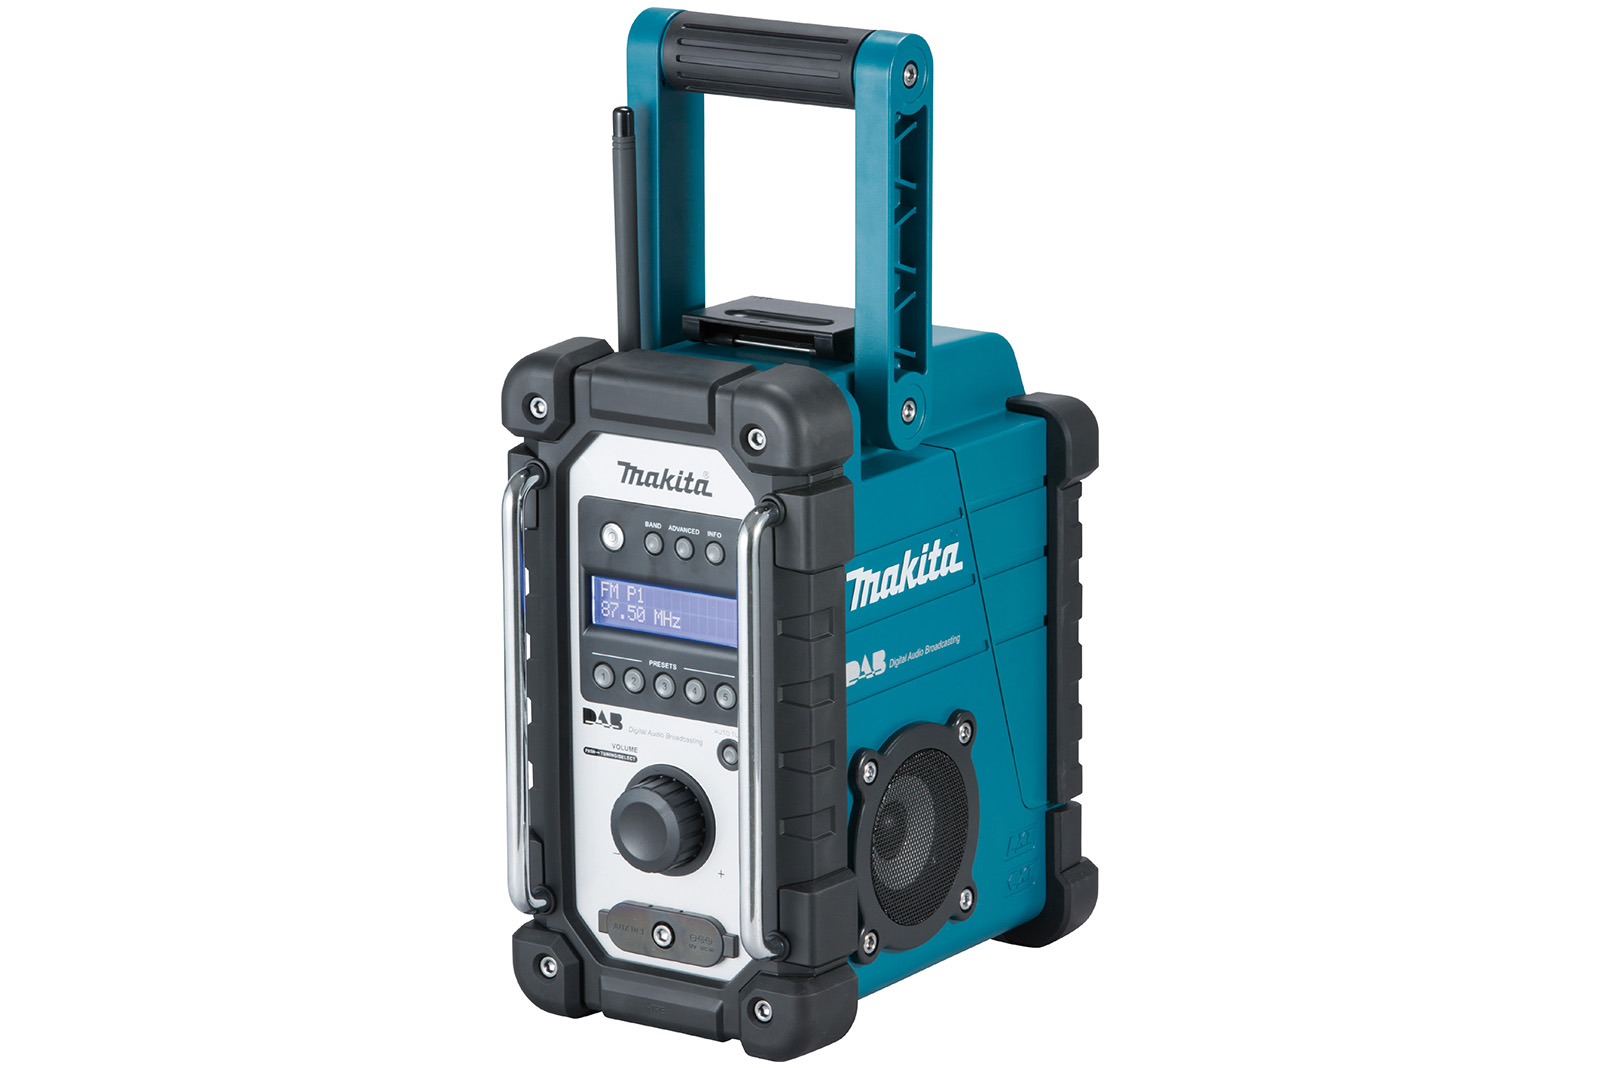 Have your say on Professional Builder for a chance to win a Makita DAB site radio